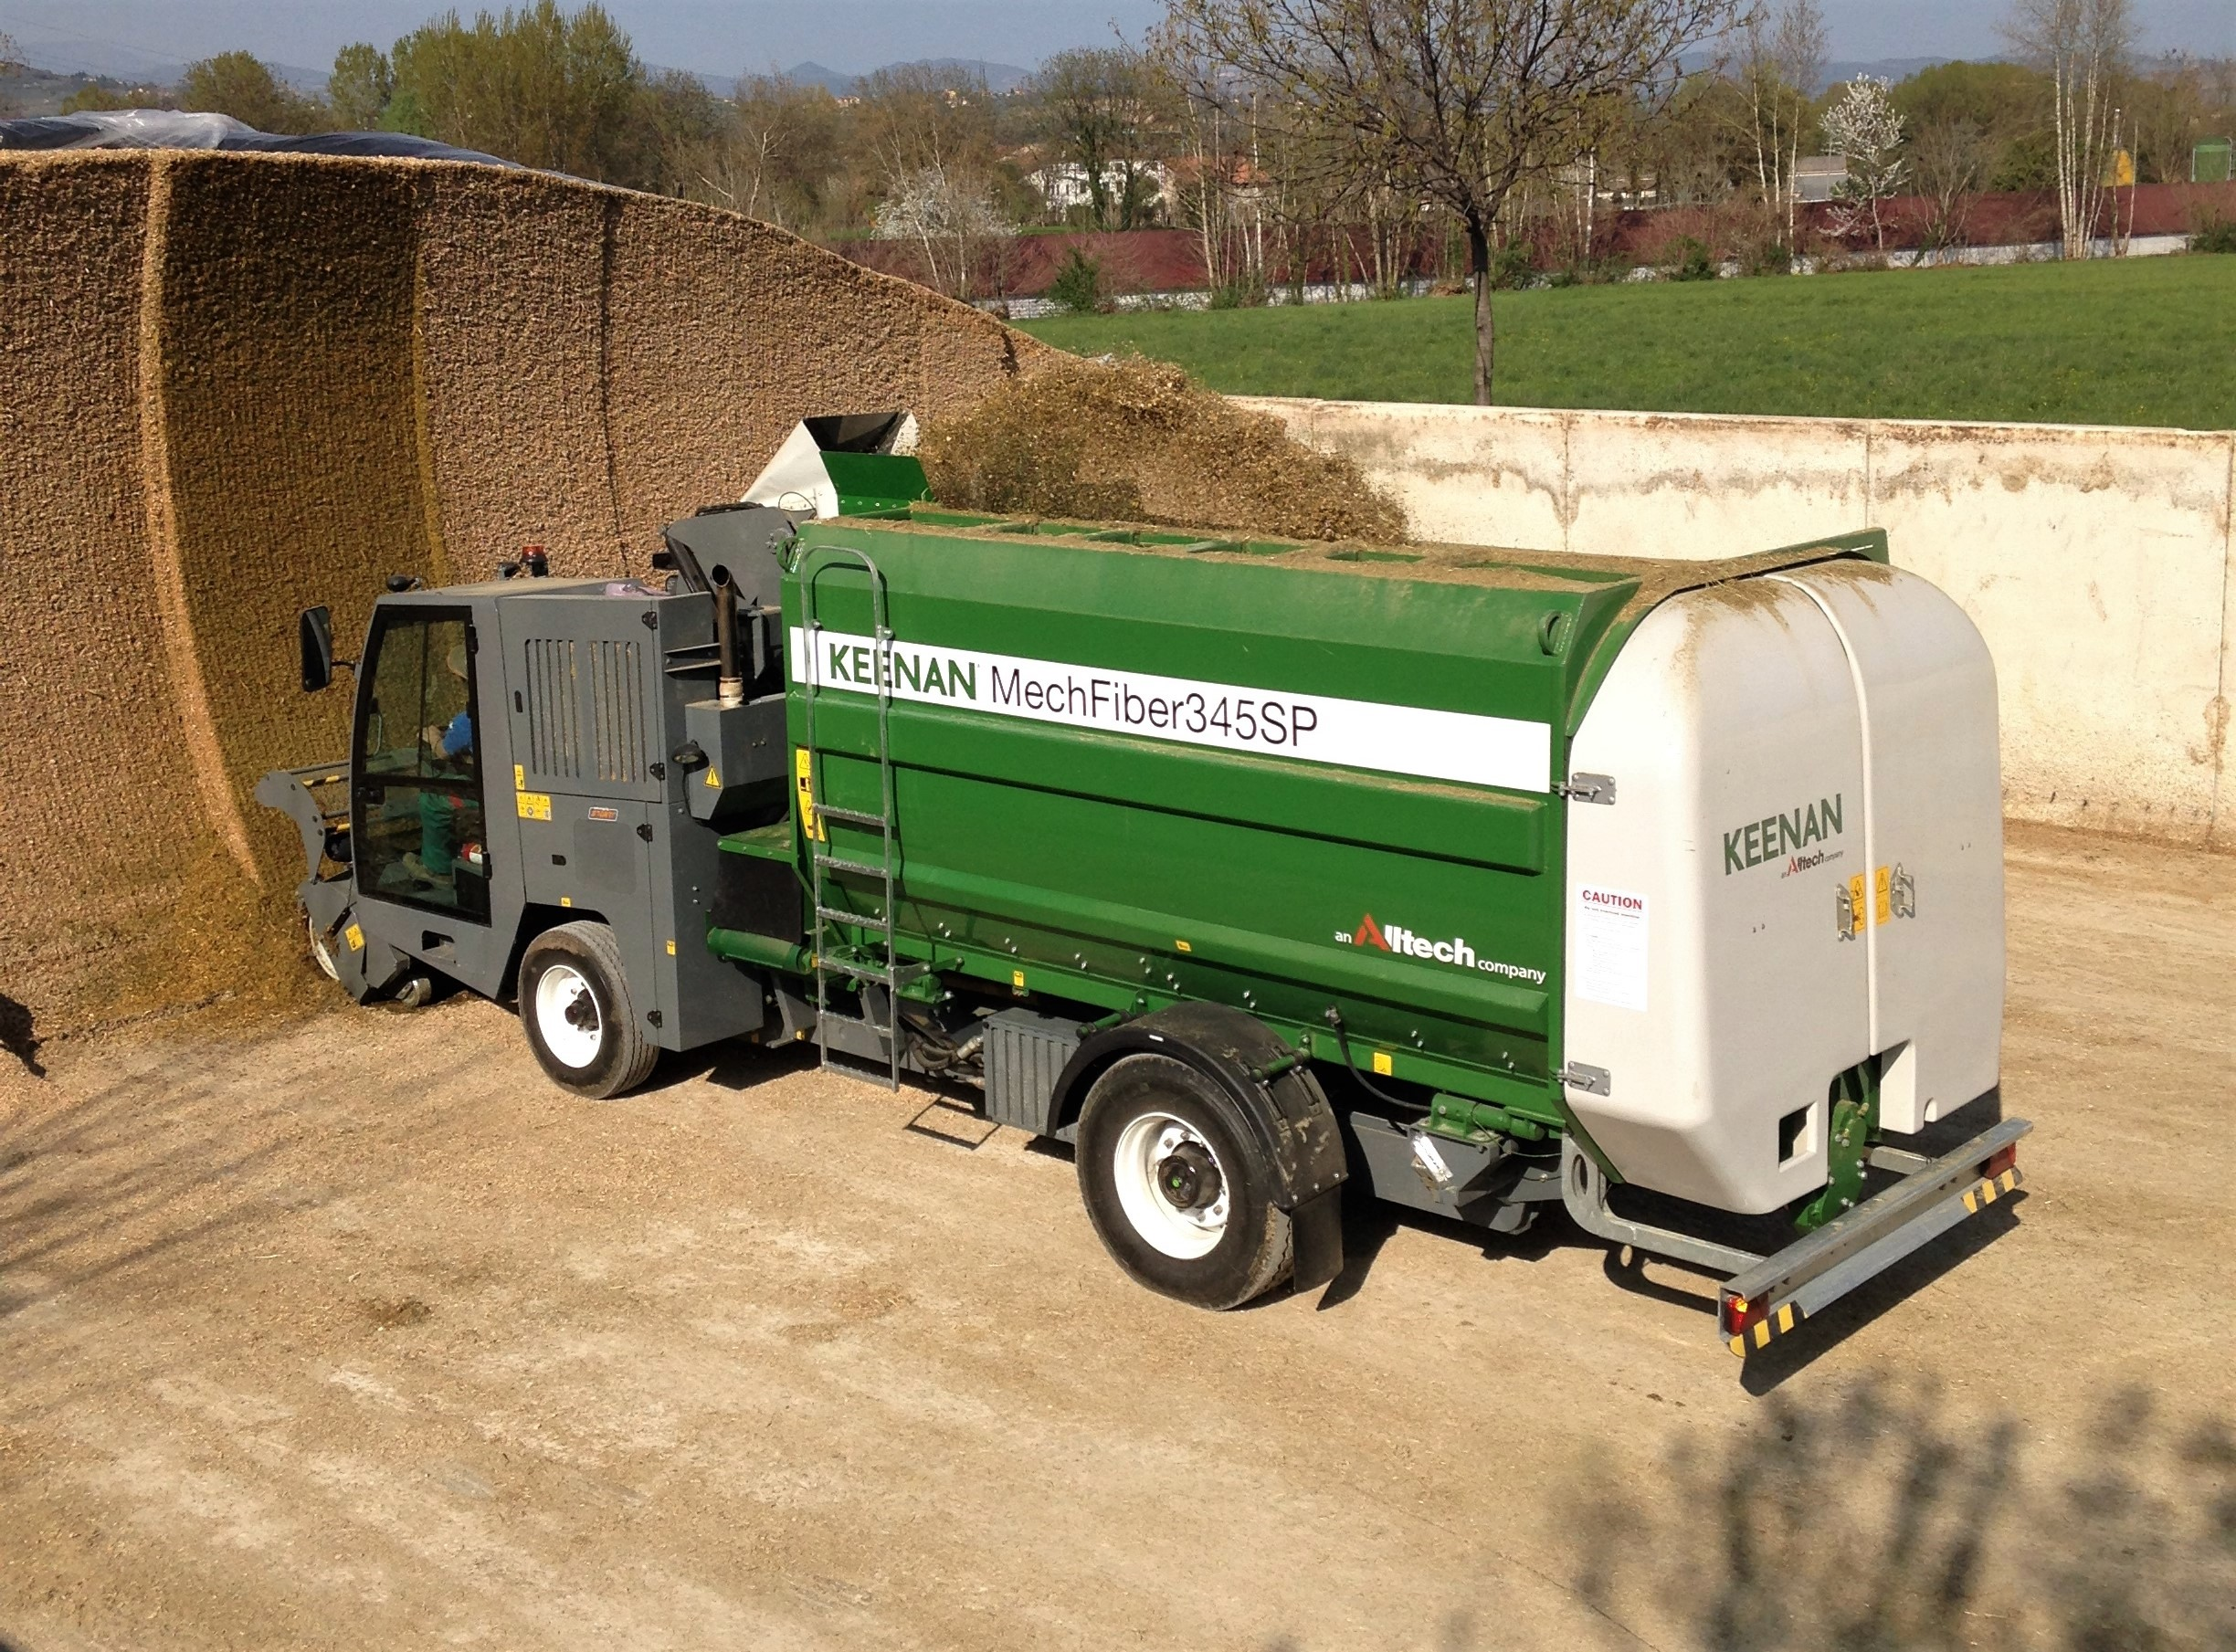 loads auger keenan ploughing ie feeder farming diet news agriland the self for up propelled